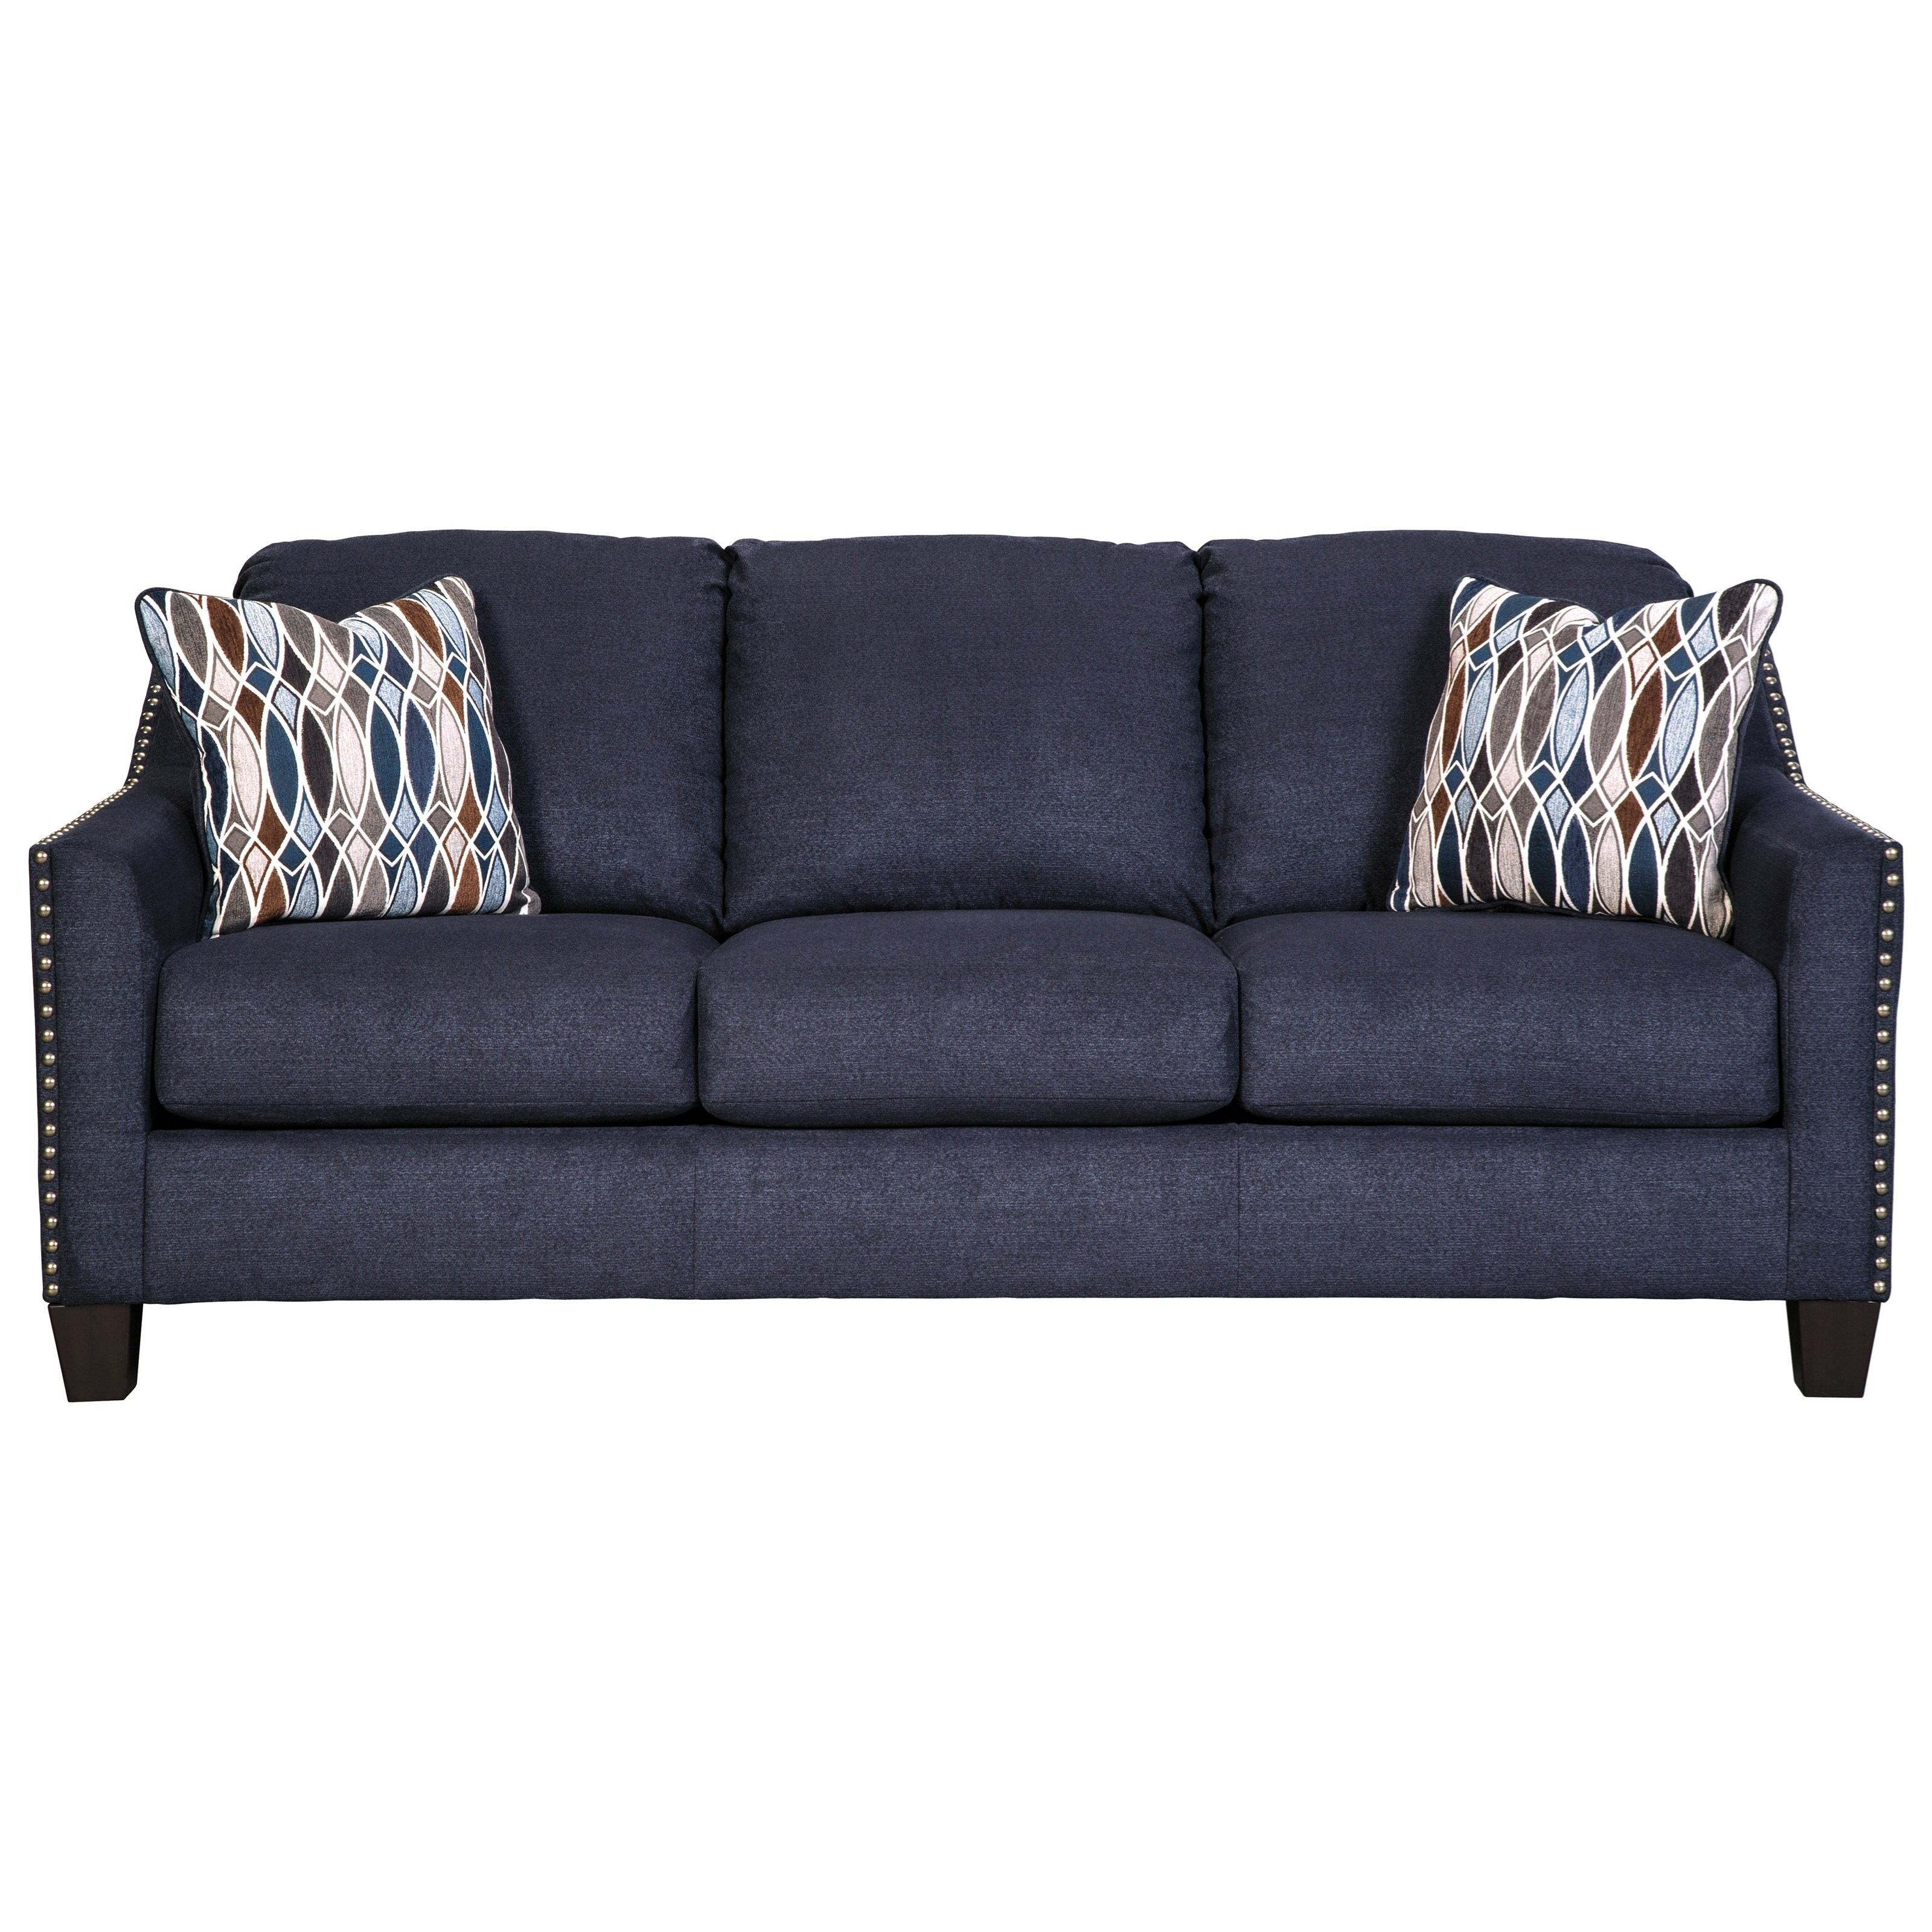 Benchcraft creeal heights 8020238 sofa with nailhead studs for Sofa with studs